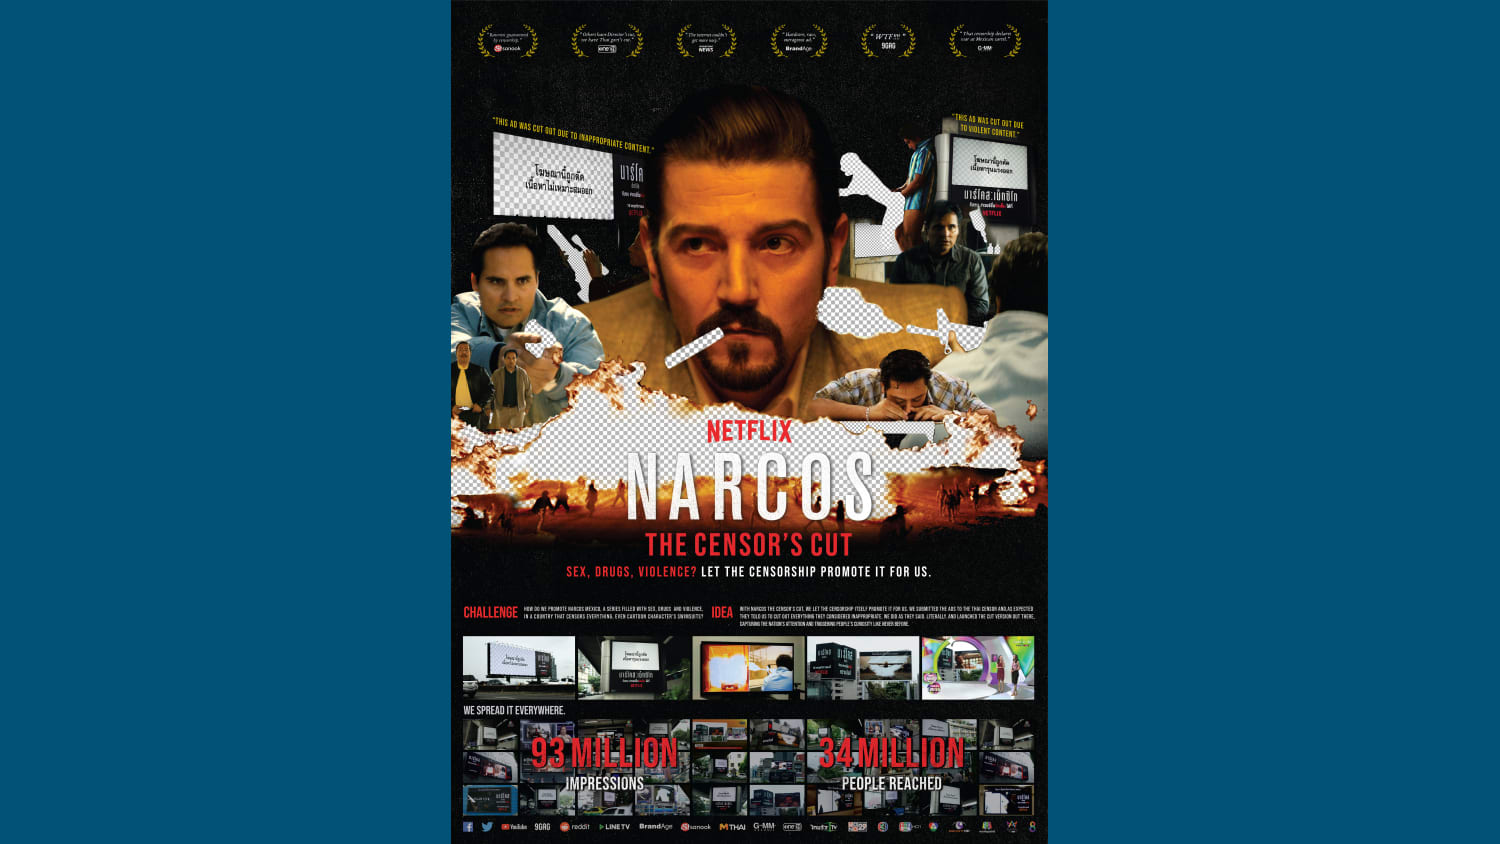 Wunerman Thompson Thailand Work Narcos CASE BOARD NARCOS THE CENSORS CUT